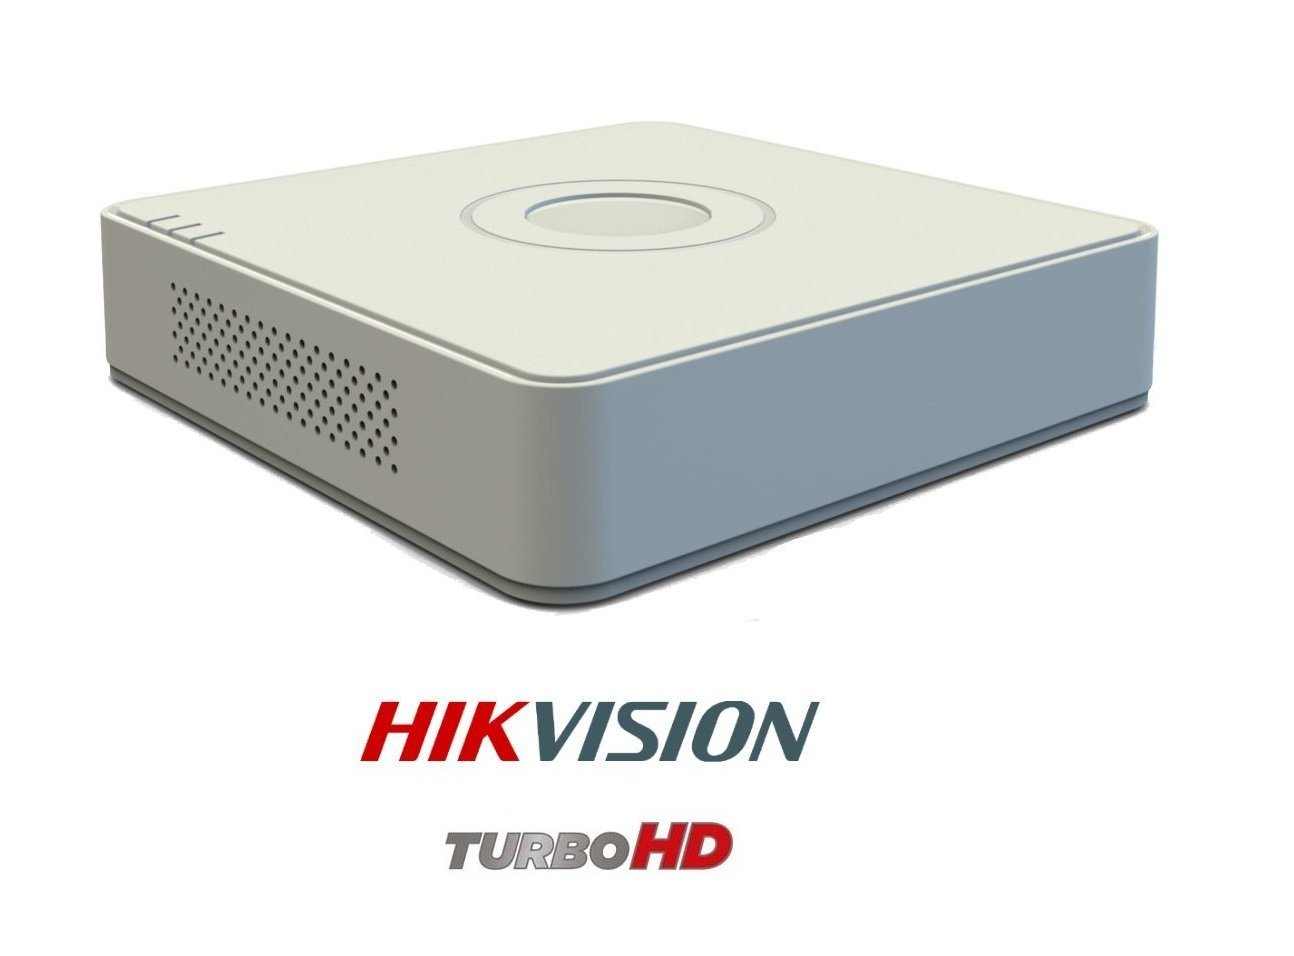 Hikvision DS-7A08HGHI-F1 720P (1MP) 8CH Turbo HD Mini DVR 1Pcs + Hikvision DS-2CE1ACOT-IRPF Bullet Camera 7Pcs Combo Kit.